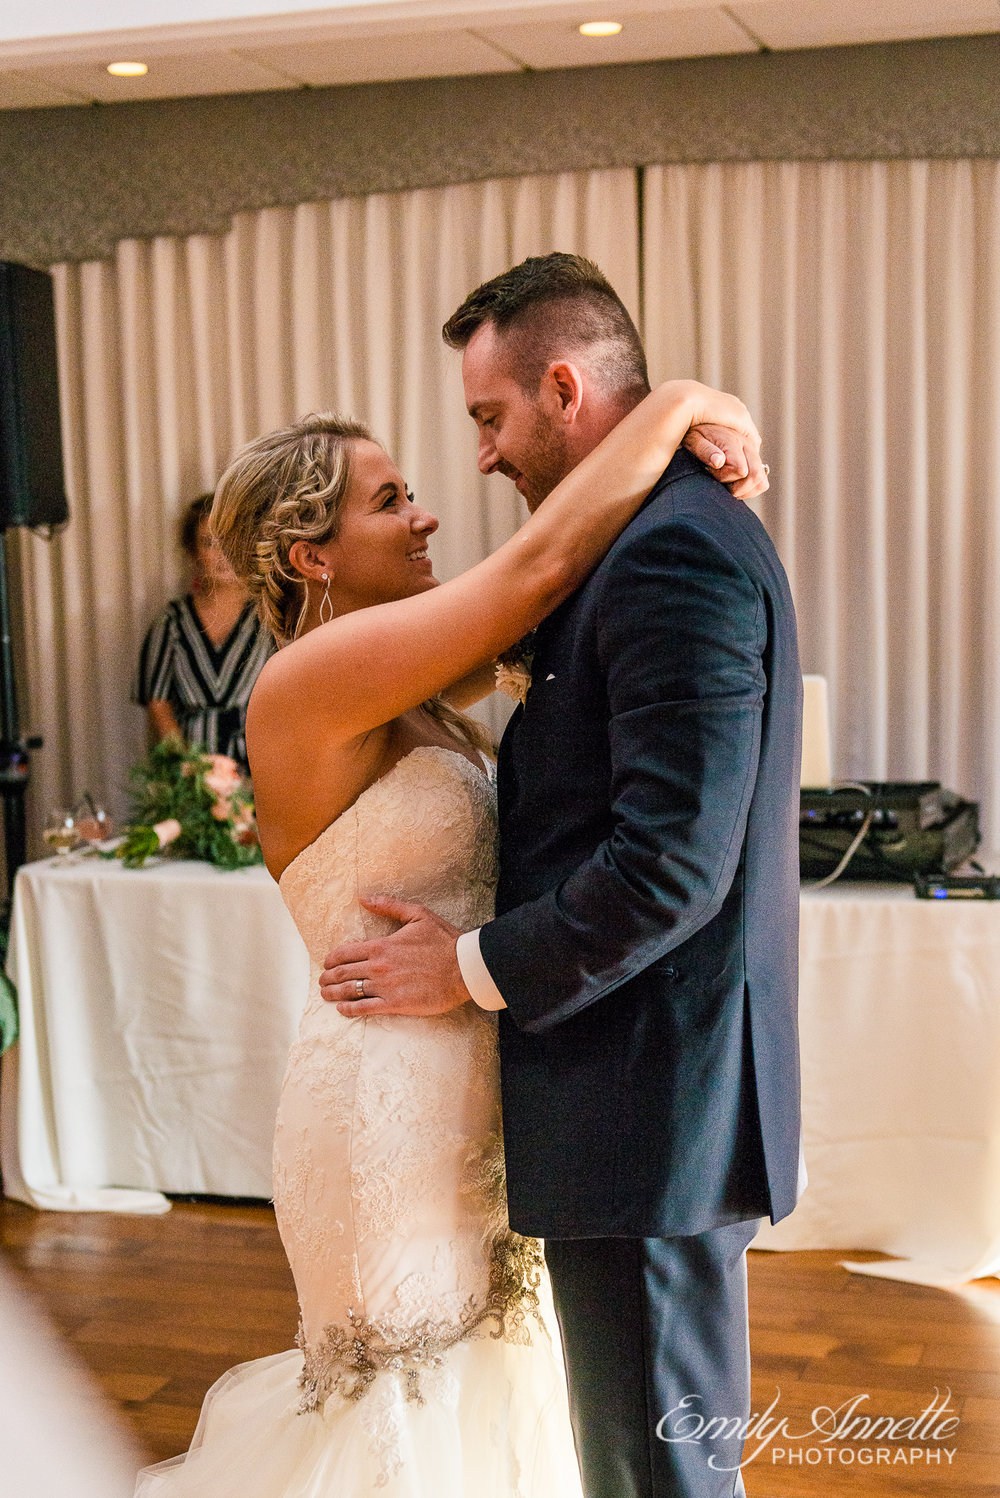 The bride and groom share their first dance as husband and wife during their wedding reception at Herrington on the Bay in North Beach, Maryland